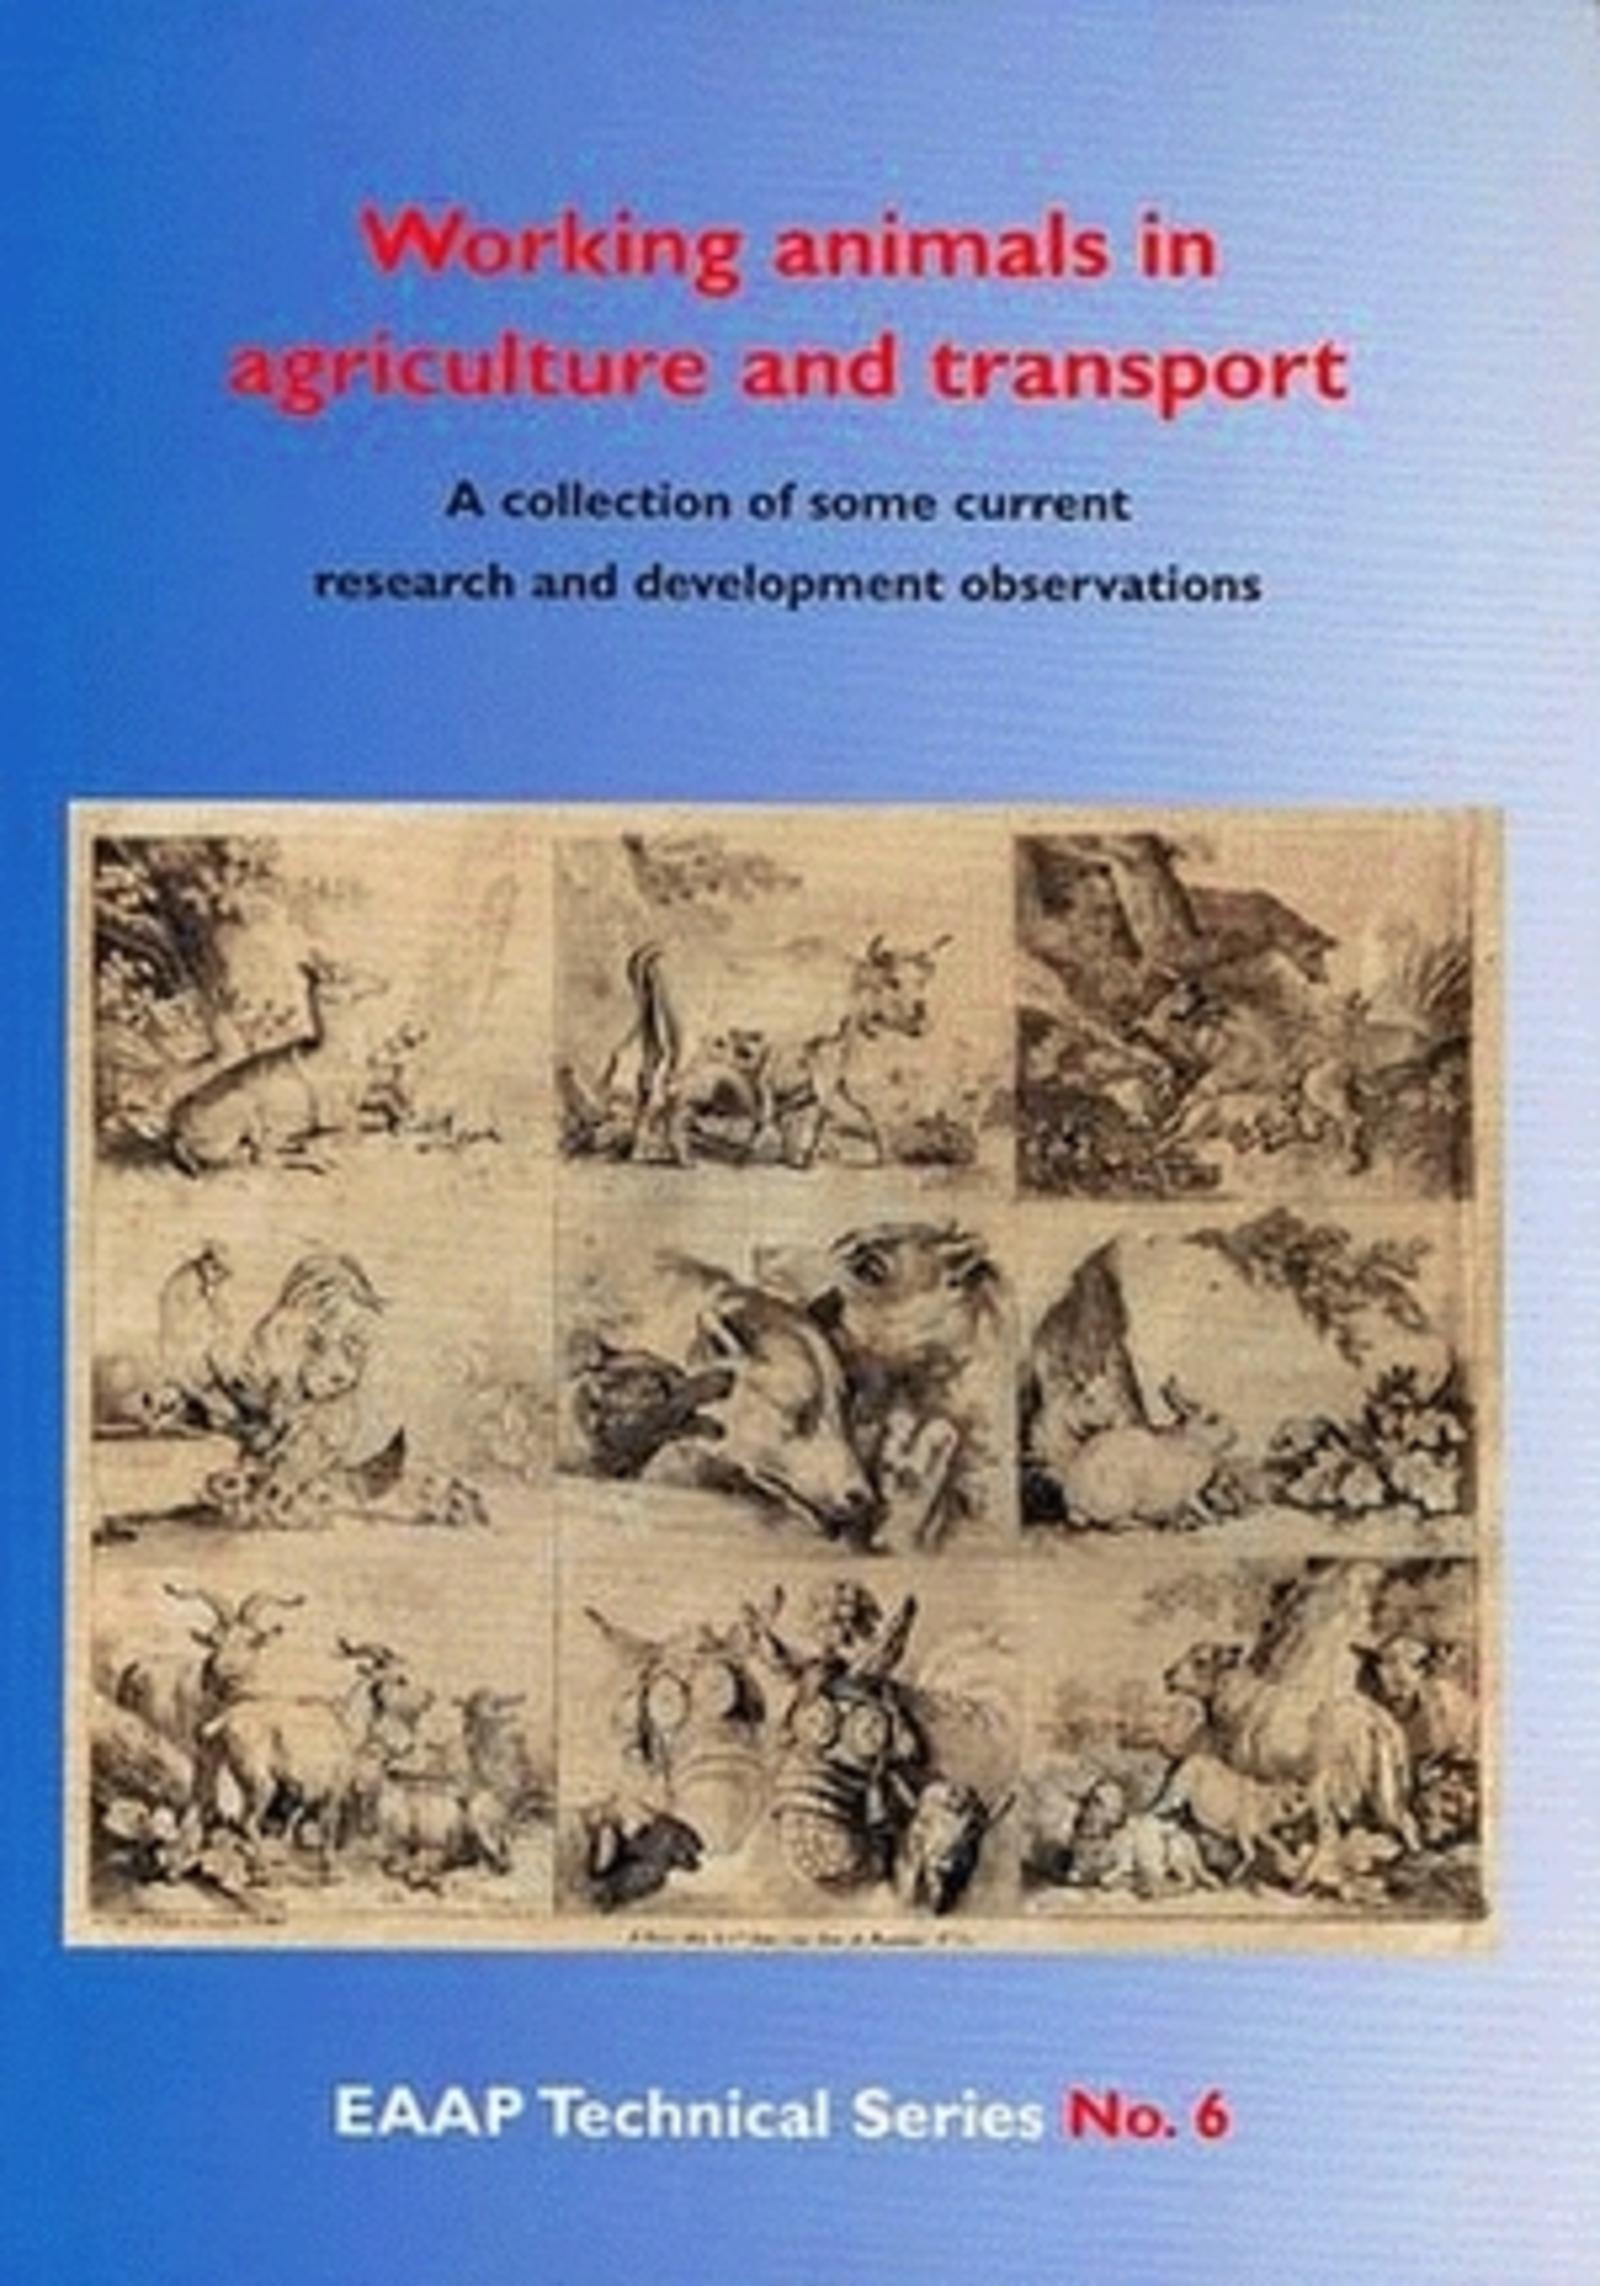 WORKING ANIMALS IN AGRICULTURE AND TRANSPORT - QUELQUES RESULTATS RECENTS DE LA